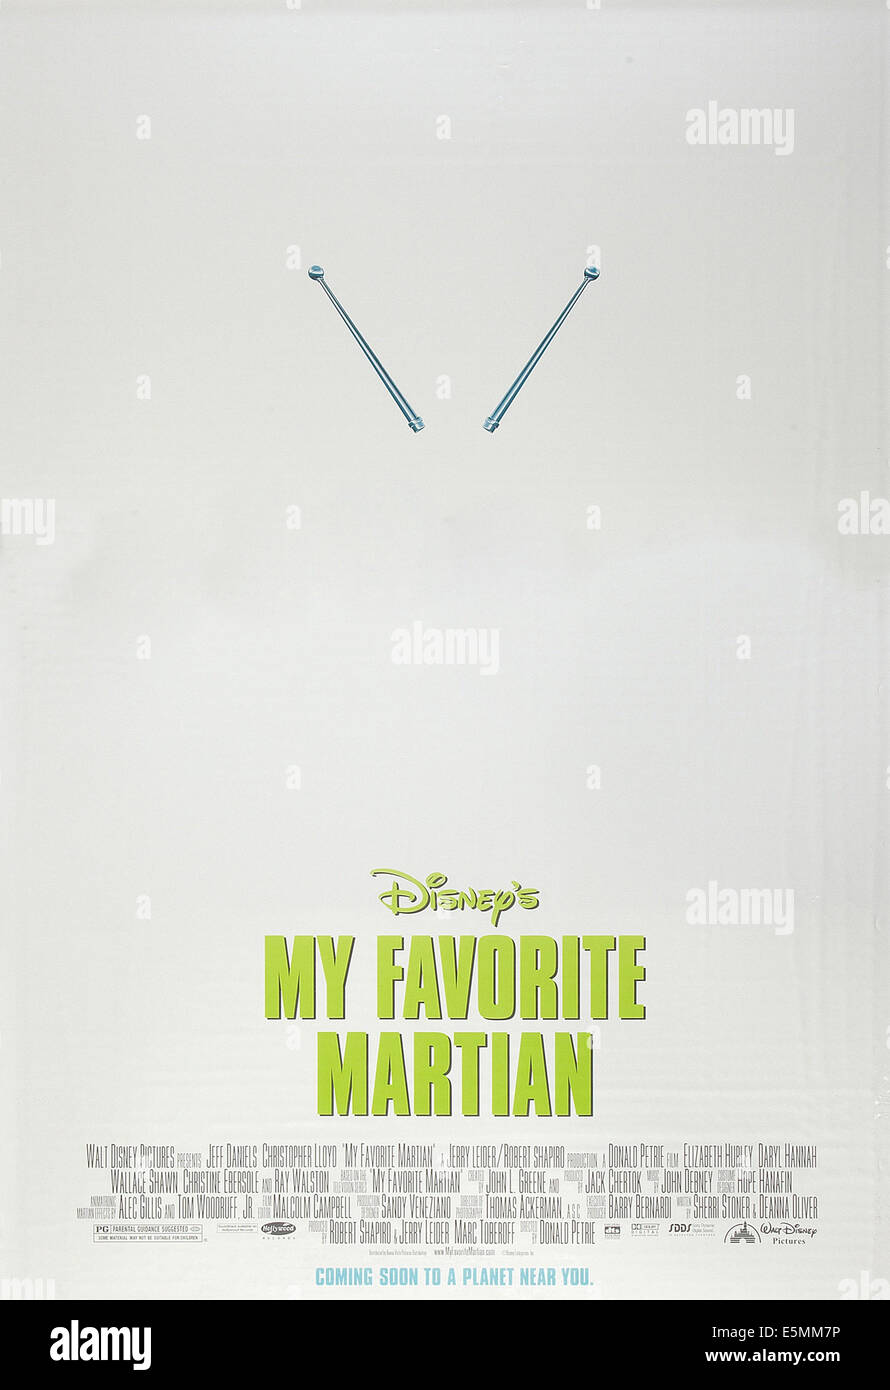 MY FAVORITE MARTIAN, US advance poster art, 1999, © Buena Vista/courtesy Everett Collection - Stock Image